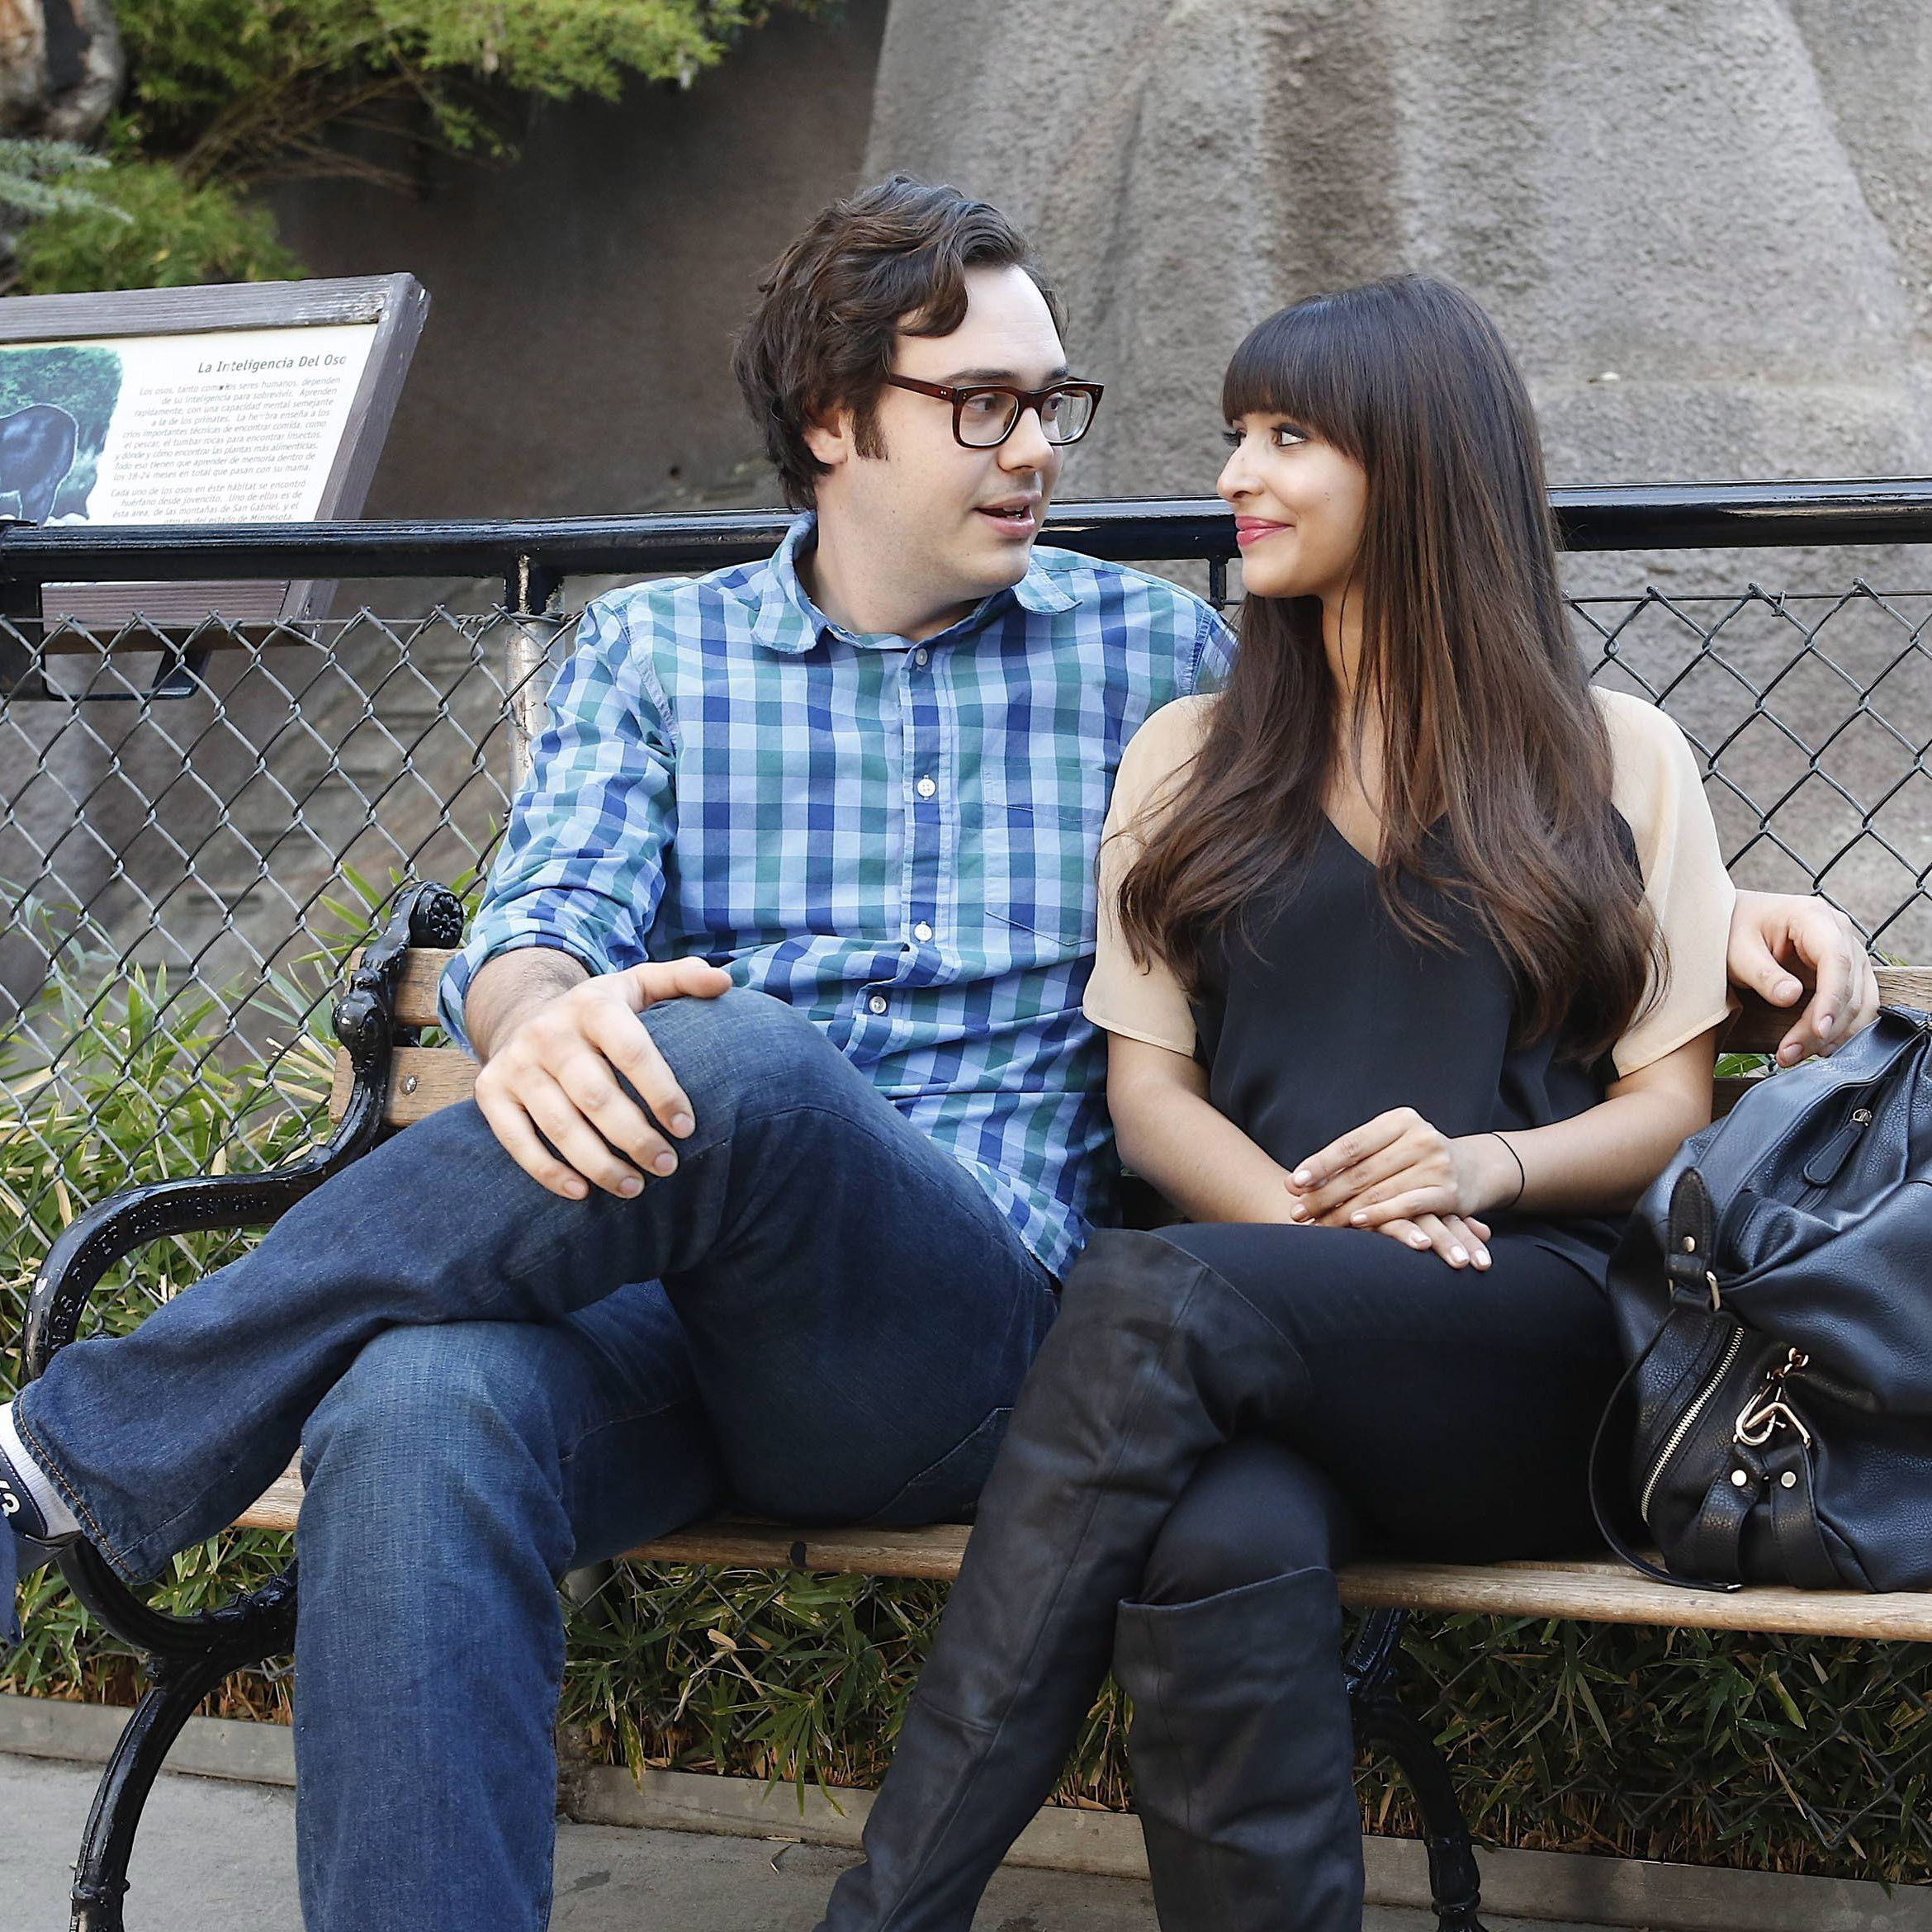 &lt;i&gt;New Girl&lt;/i&gt; Review: &quot;Eggs&quot; (Episode 2.09)